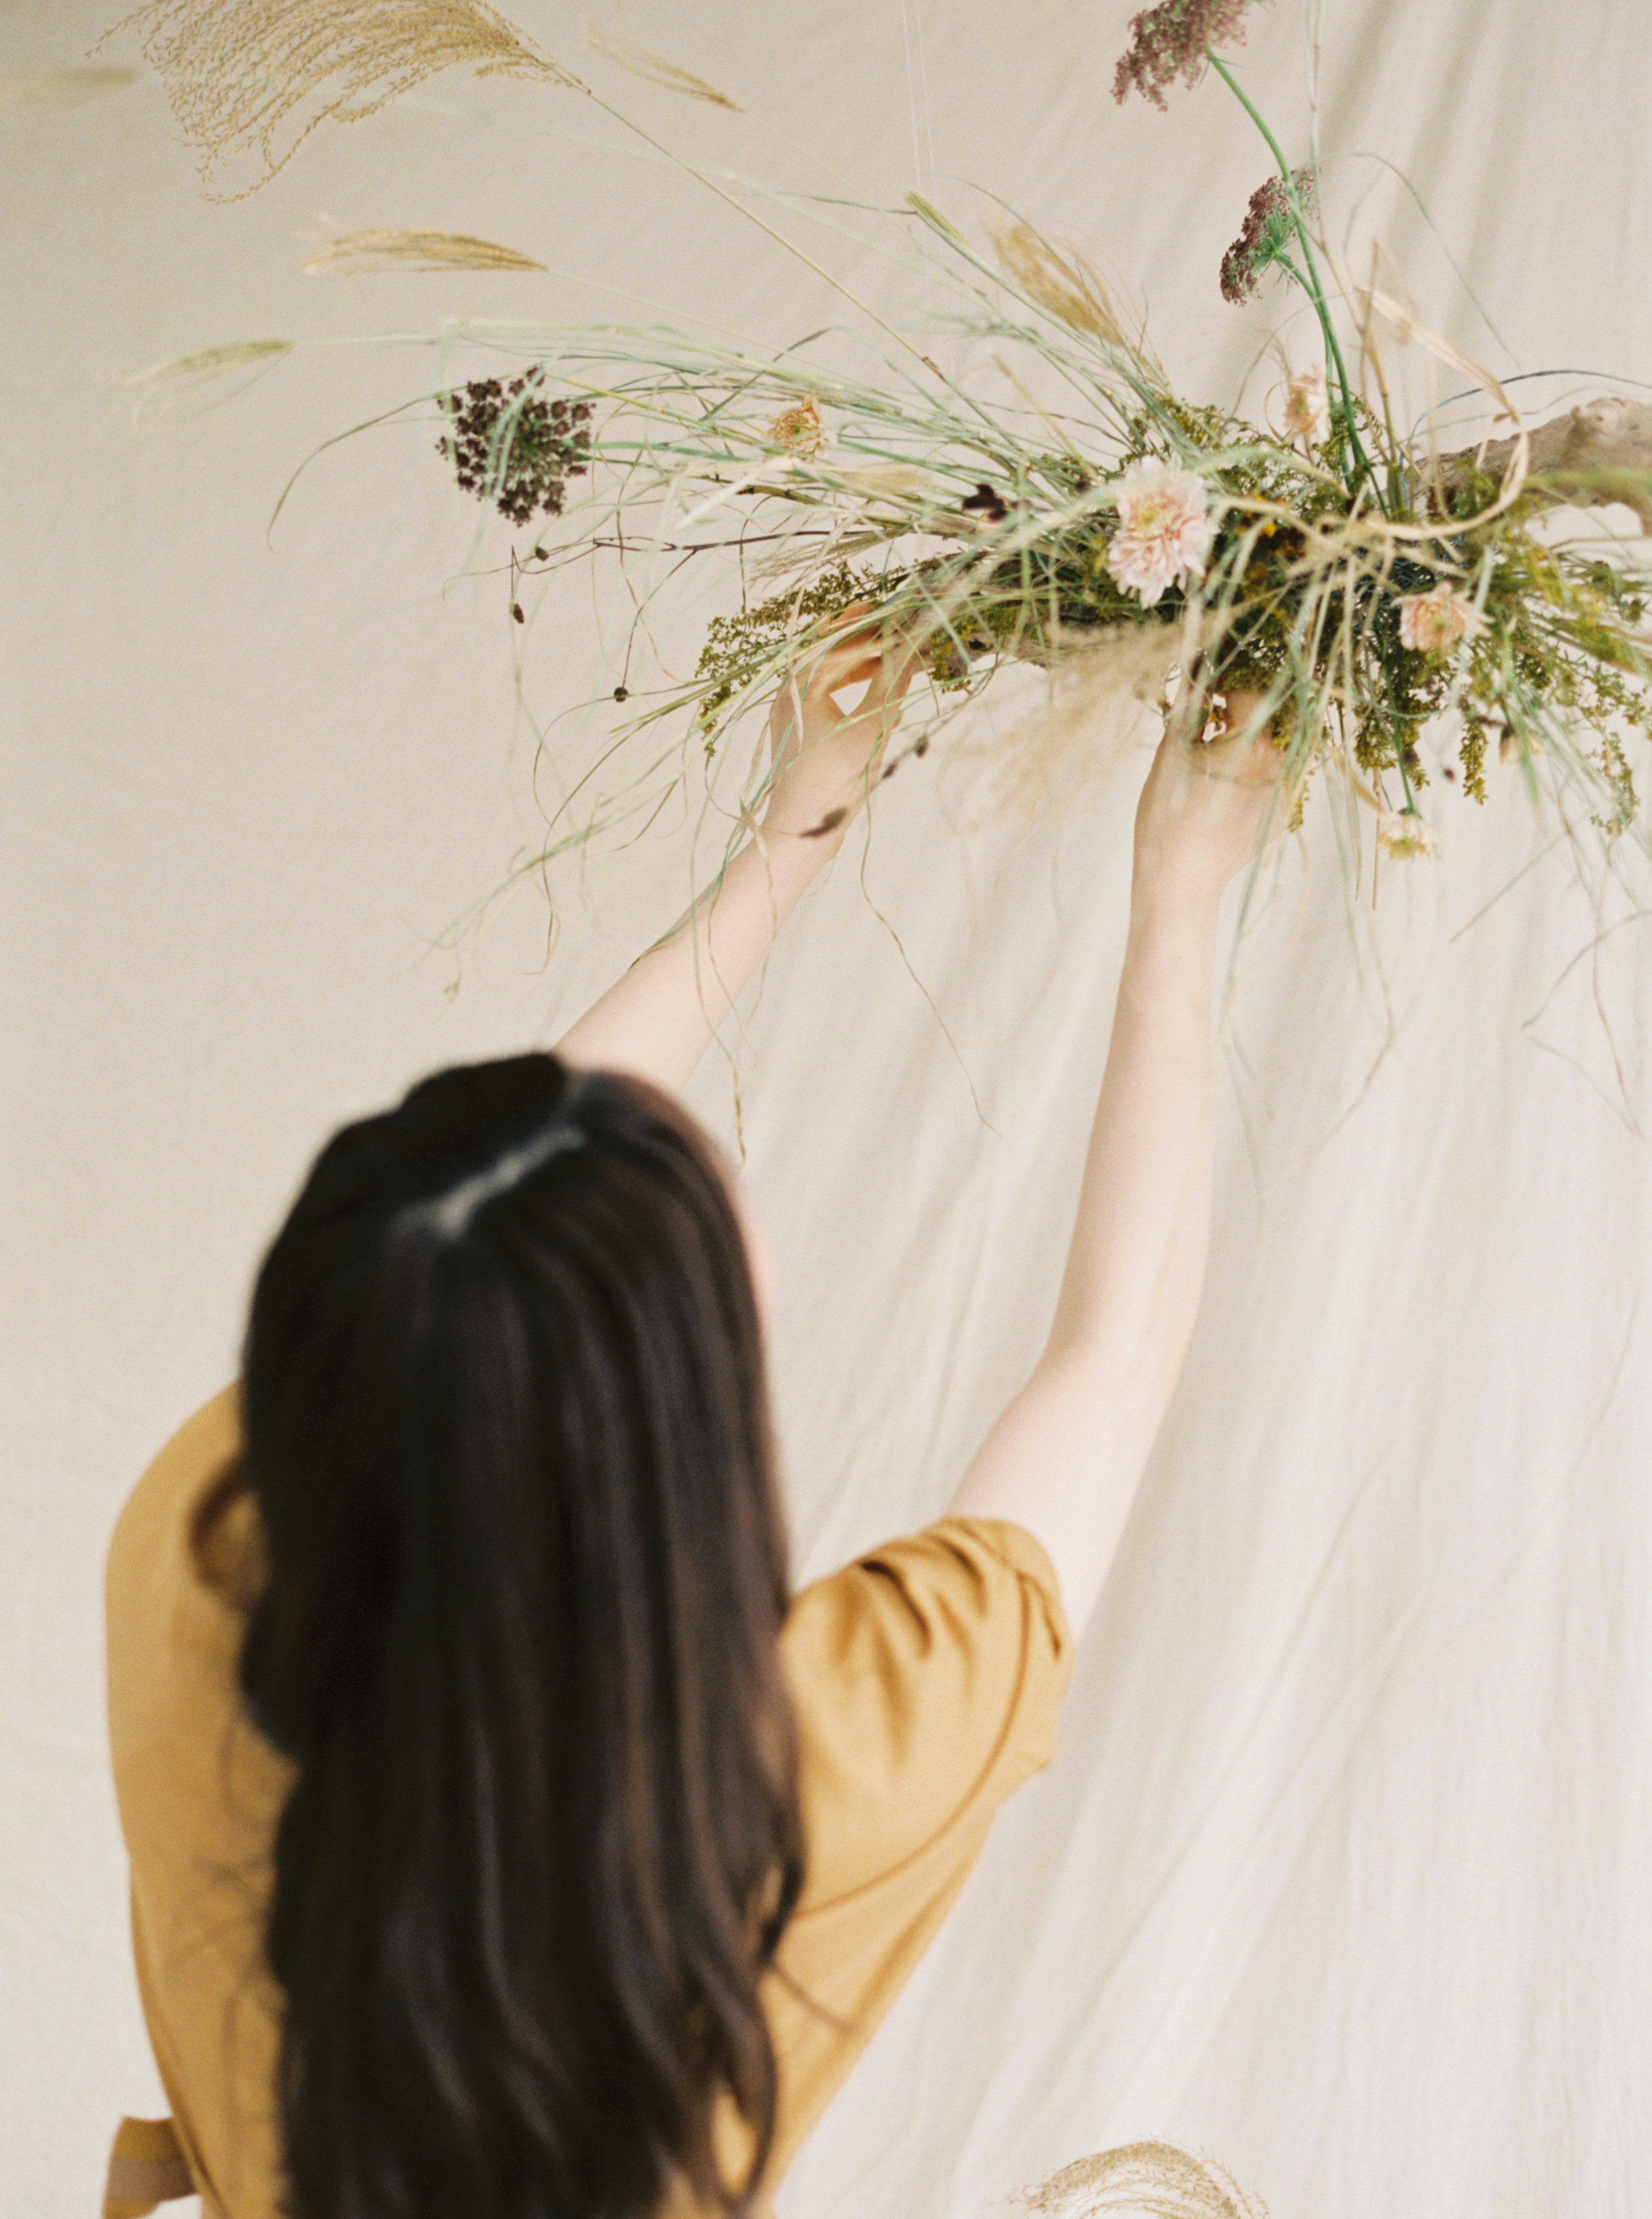 Autumncolourtones of mustard and cream for an artisan dried flower art installation with dreamy wedding ceremony backdrop design with trendy pampas grass at a Sydney wedding photoshoot created and styled by Idyll Flower Studio andPrajnaFlowers - captured on fine art film by Sheri McMahon Photography -